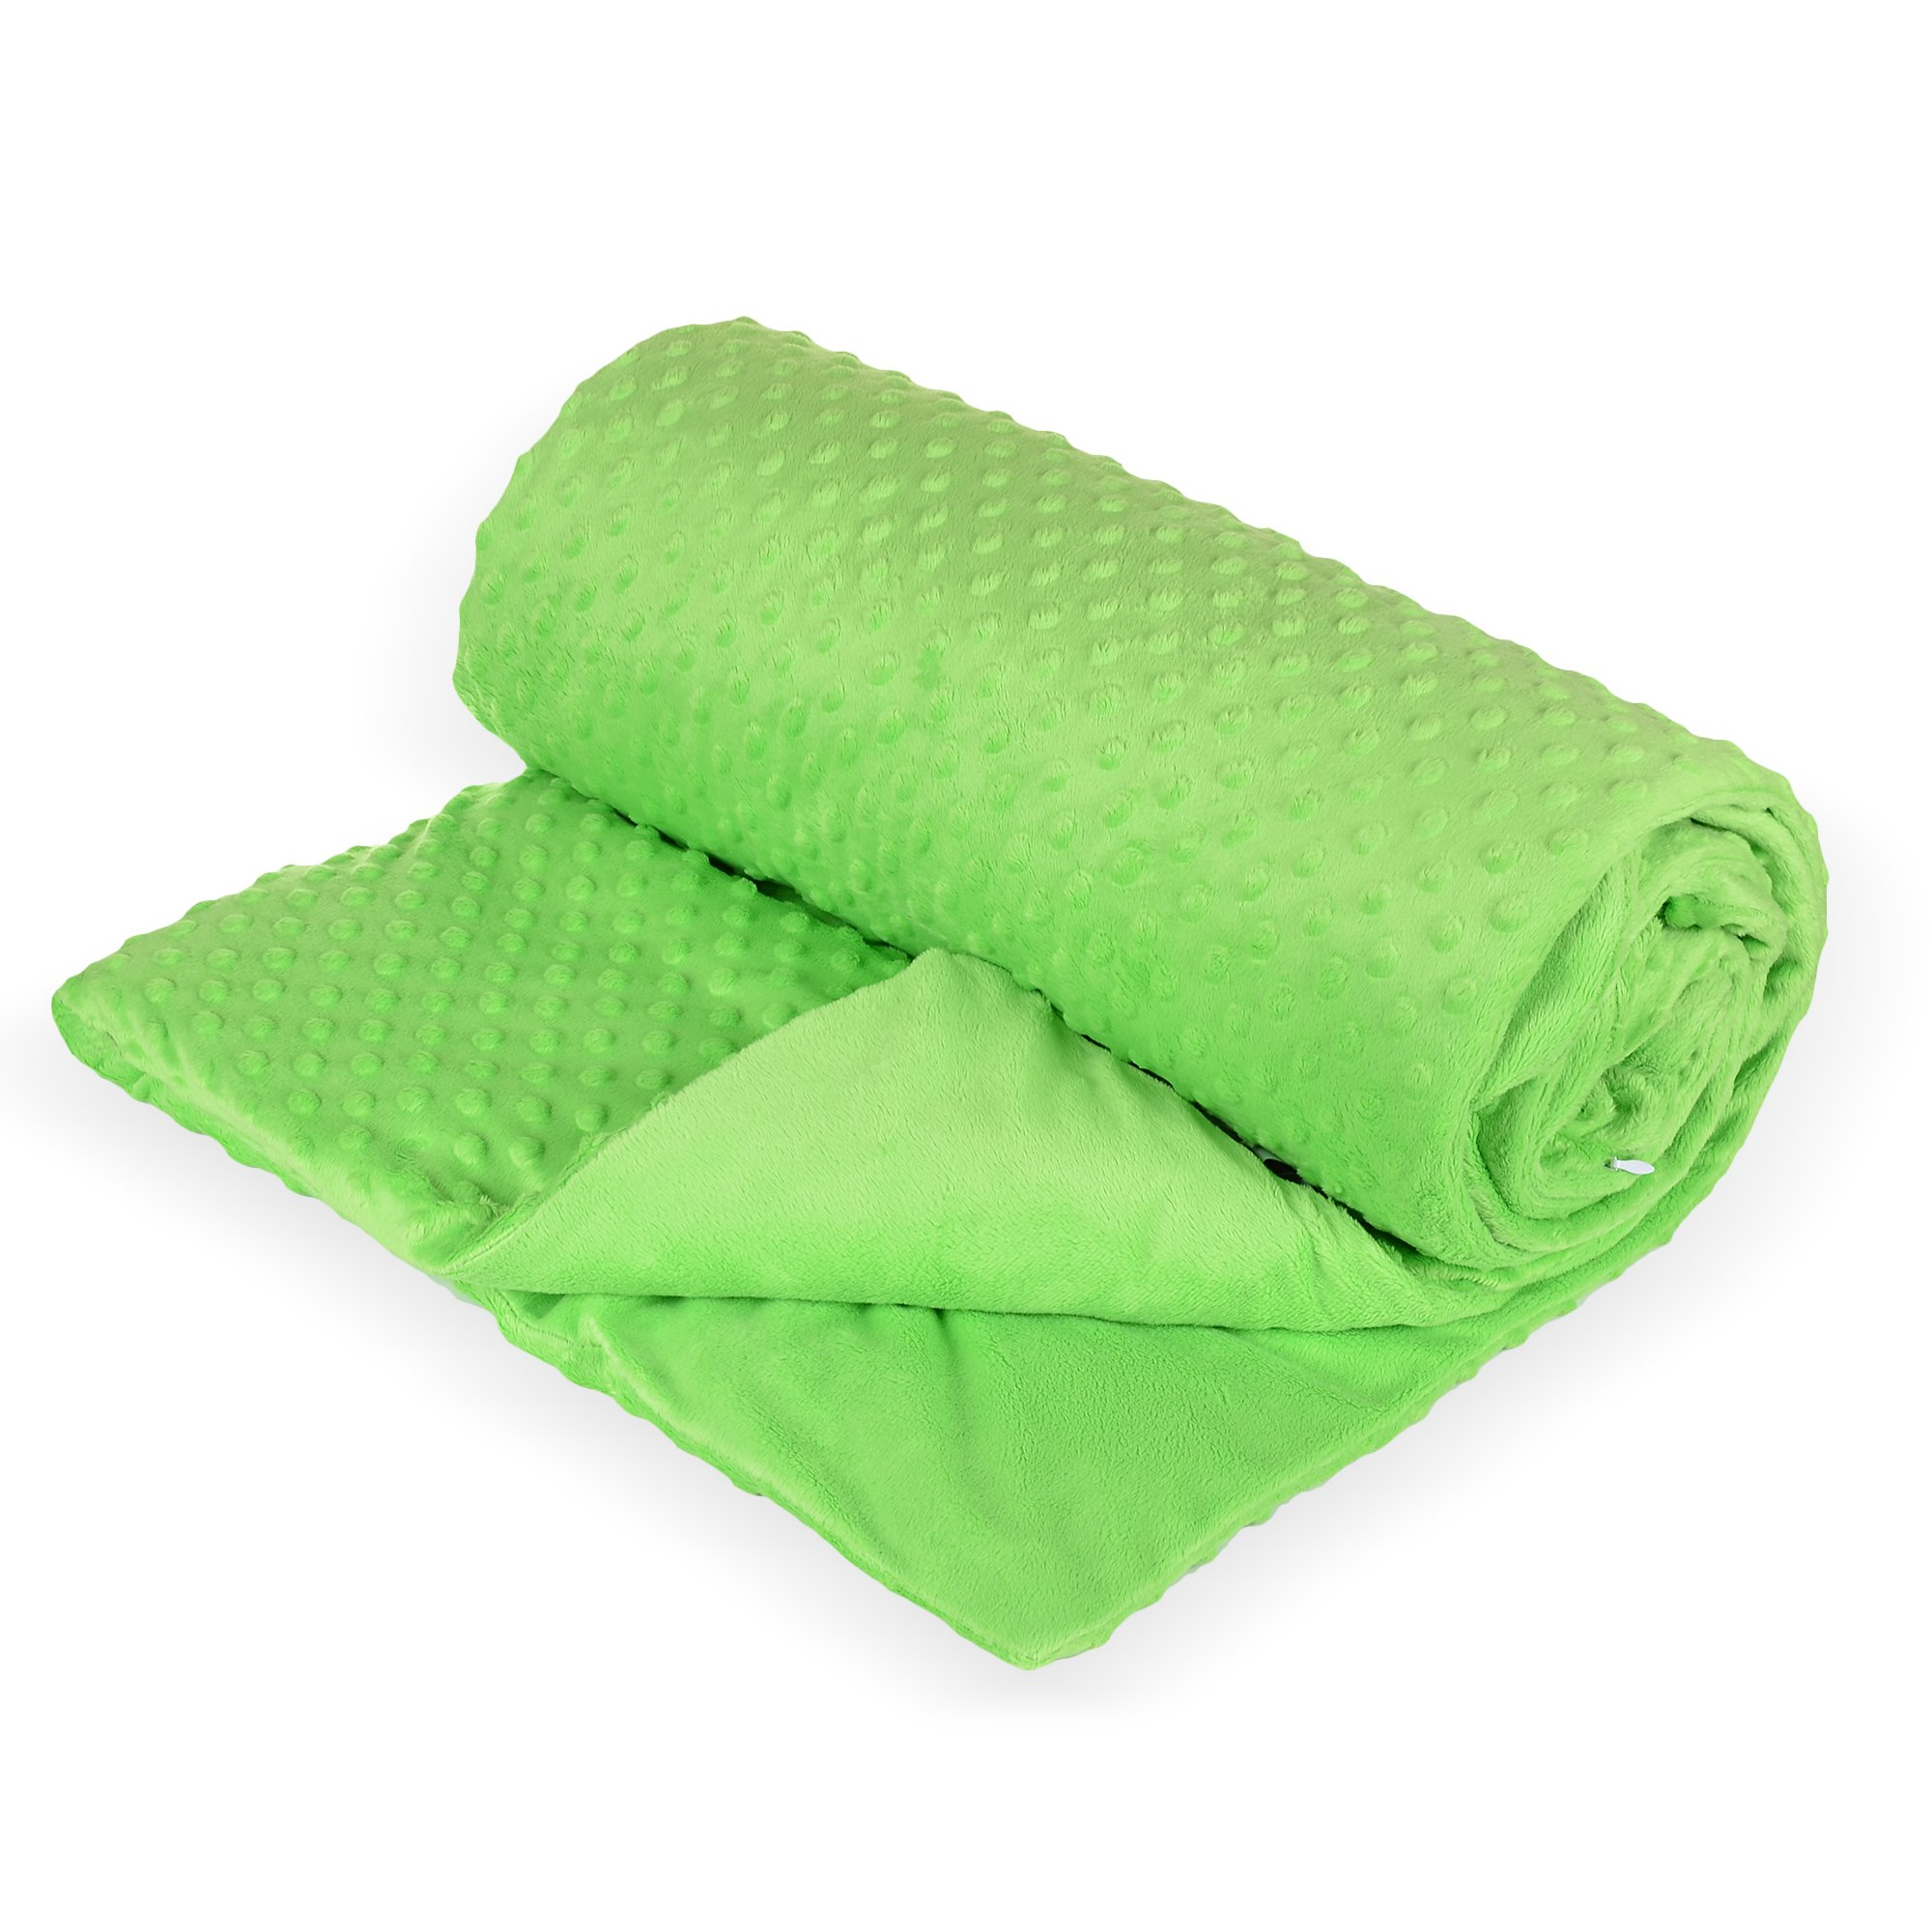 Adapt-Ease Weighted Compression Sensory Therapy Blanket (Green)